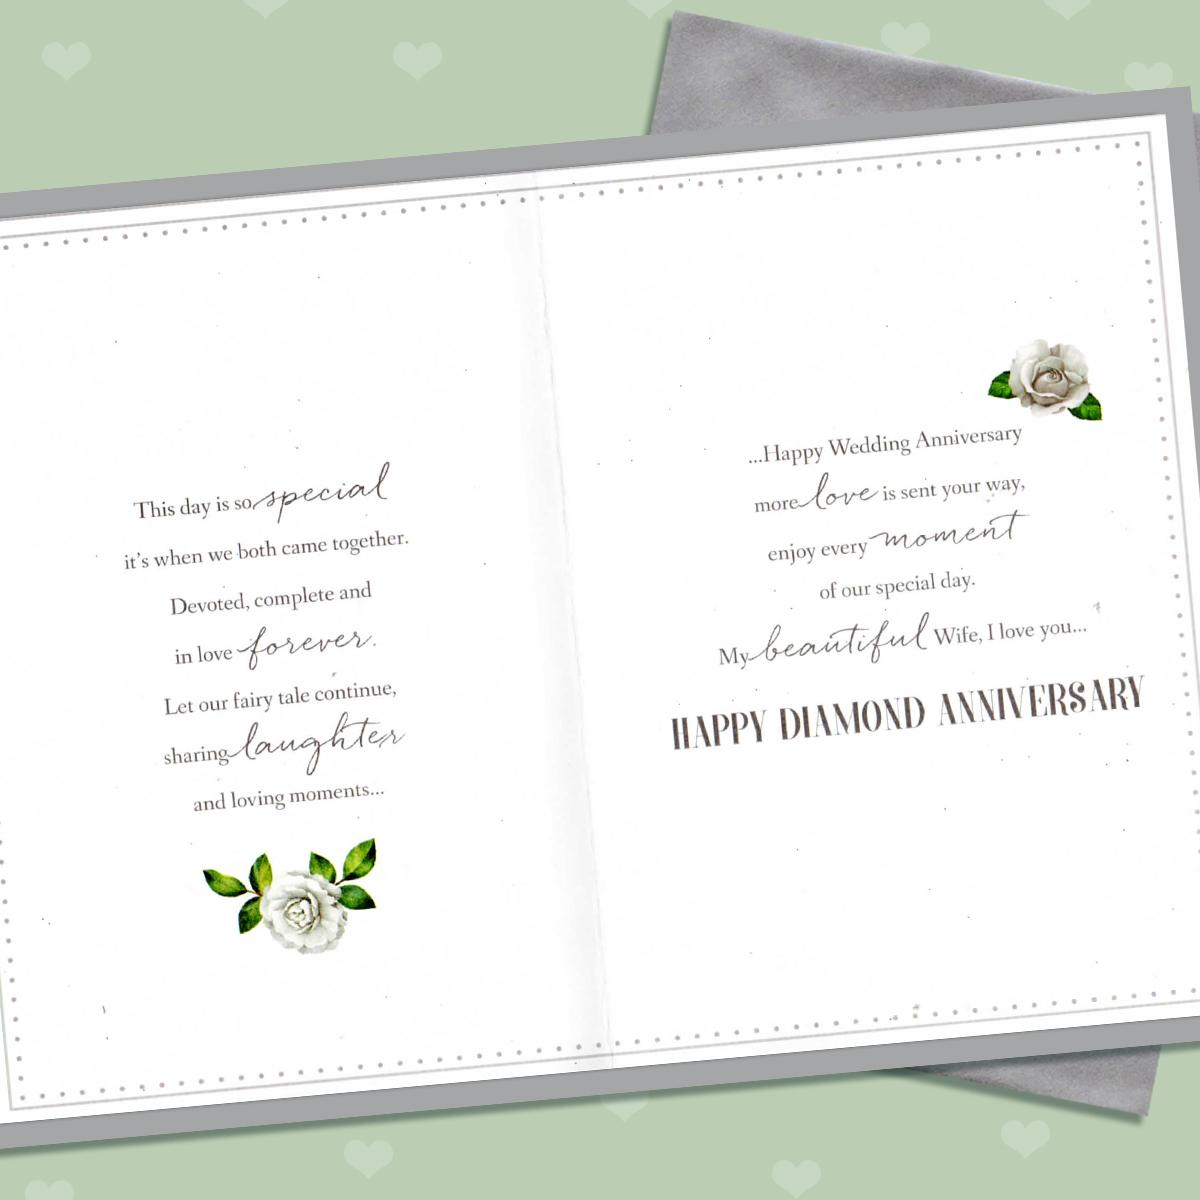 Inside Image Showing Layout And Printed Text Of Wife Diamond Anniversary Card